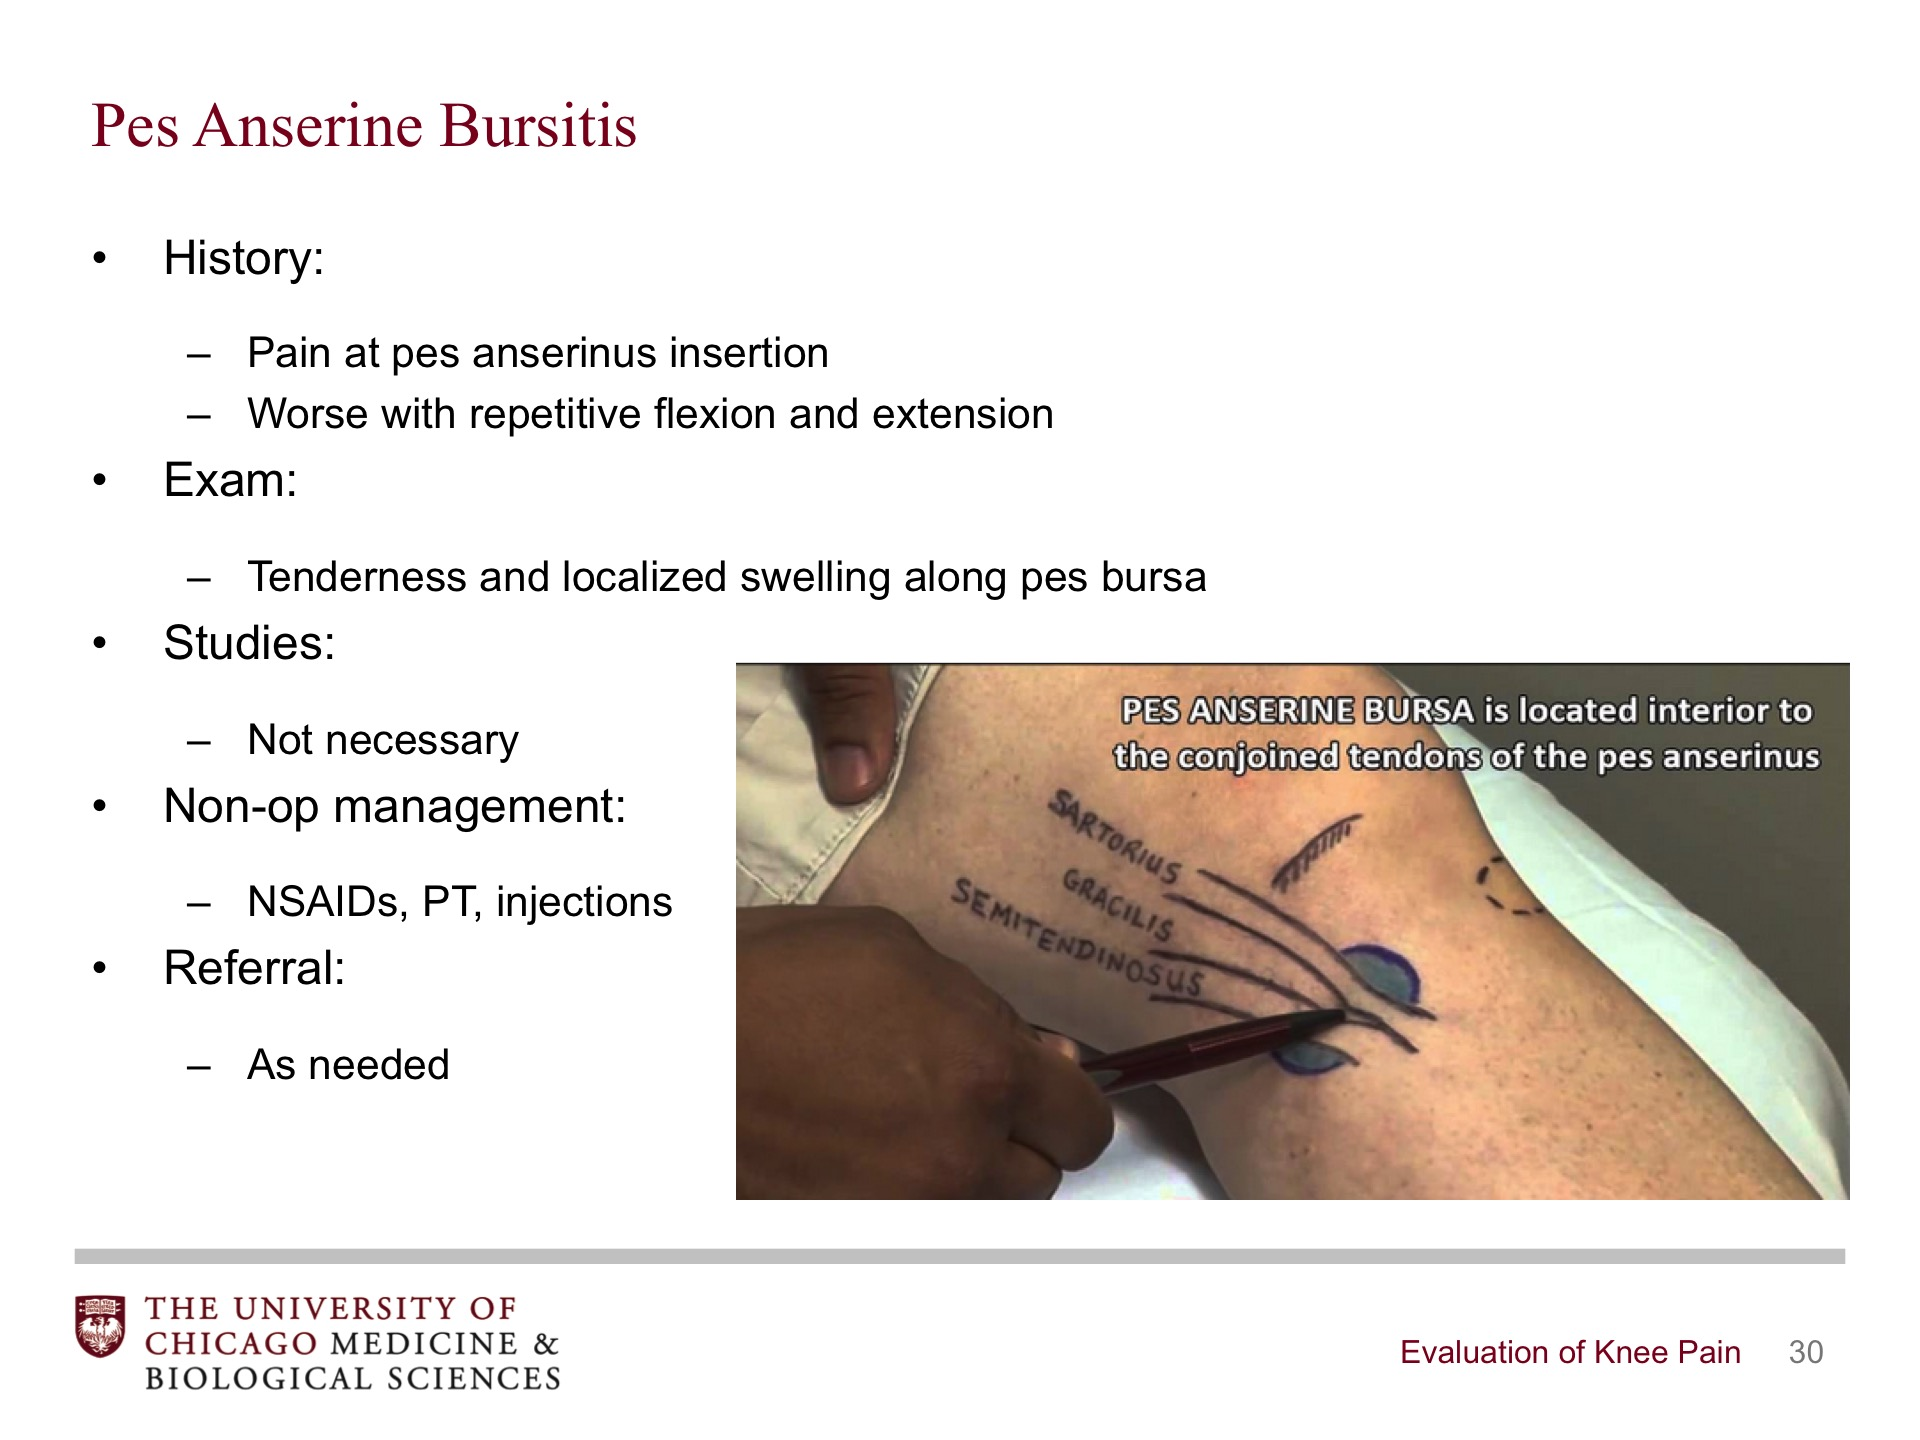 Evaluation Of Knee Pain Broadcastmed